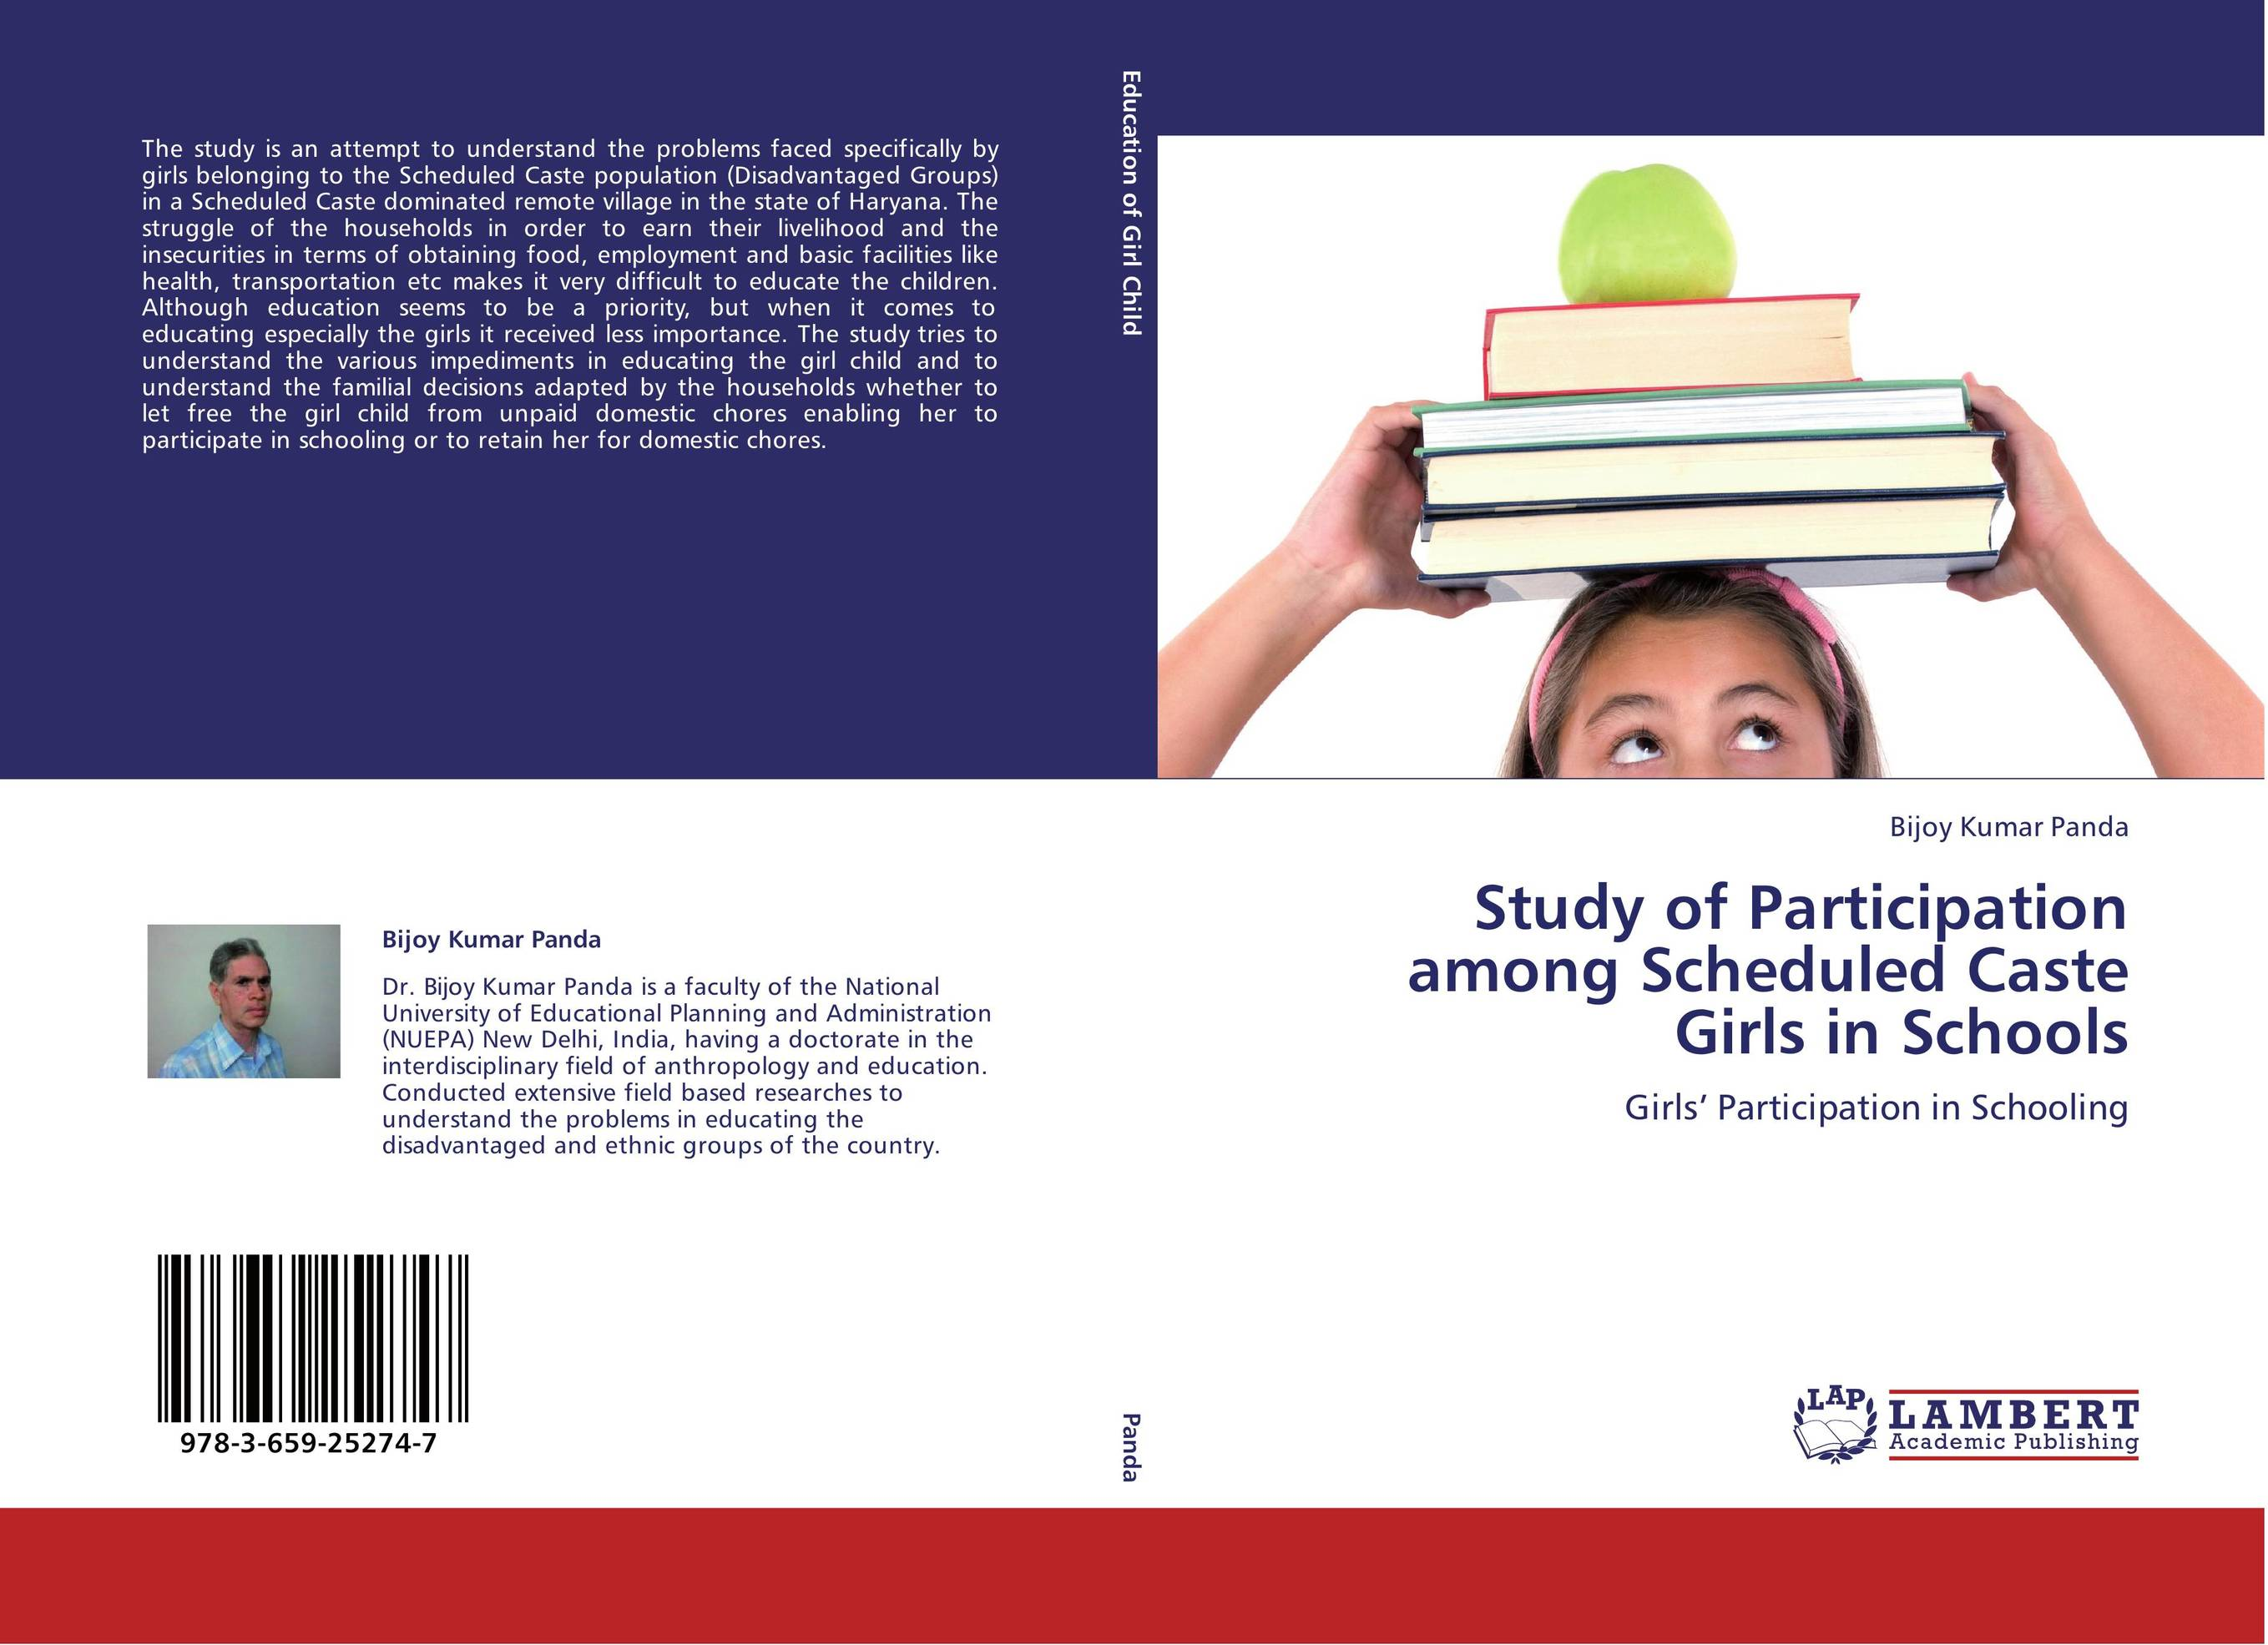 a study of the problems faced A study of issues & challenges of implementation of  the present paper focuses on the study of issues and challenges faced  the problems faced after the.